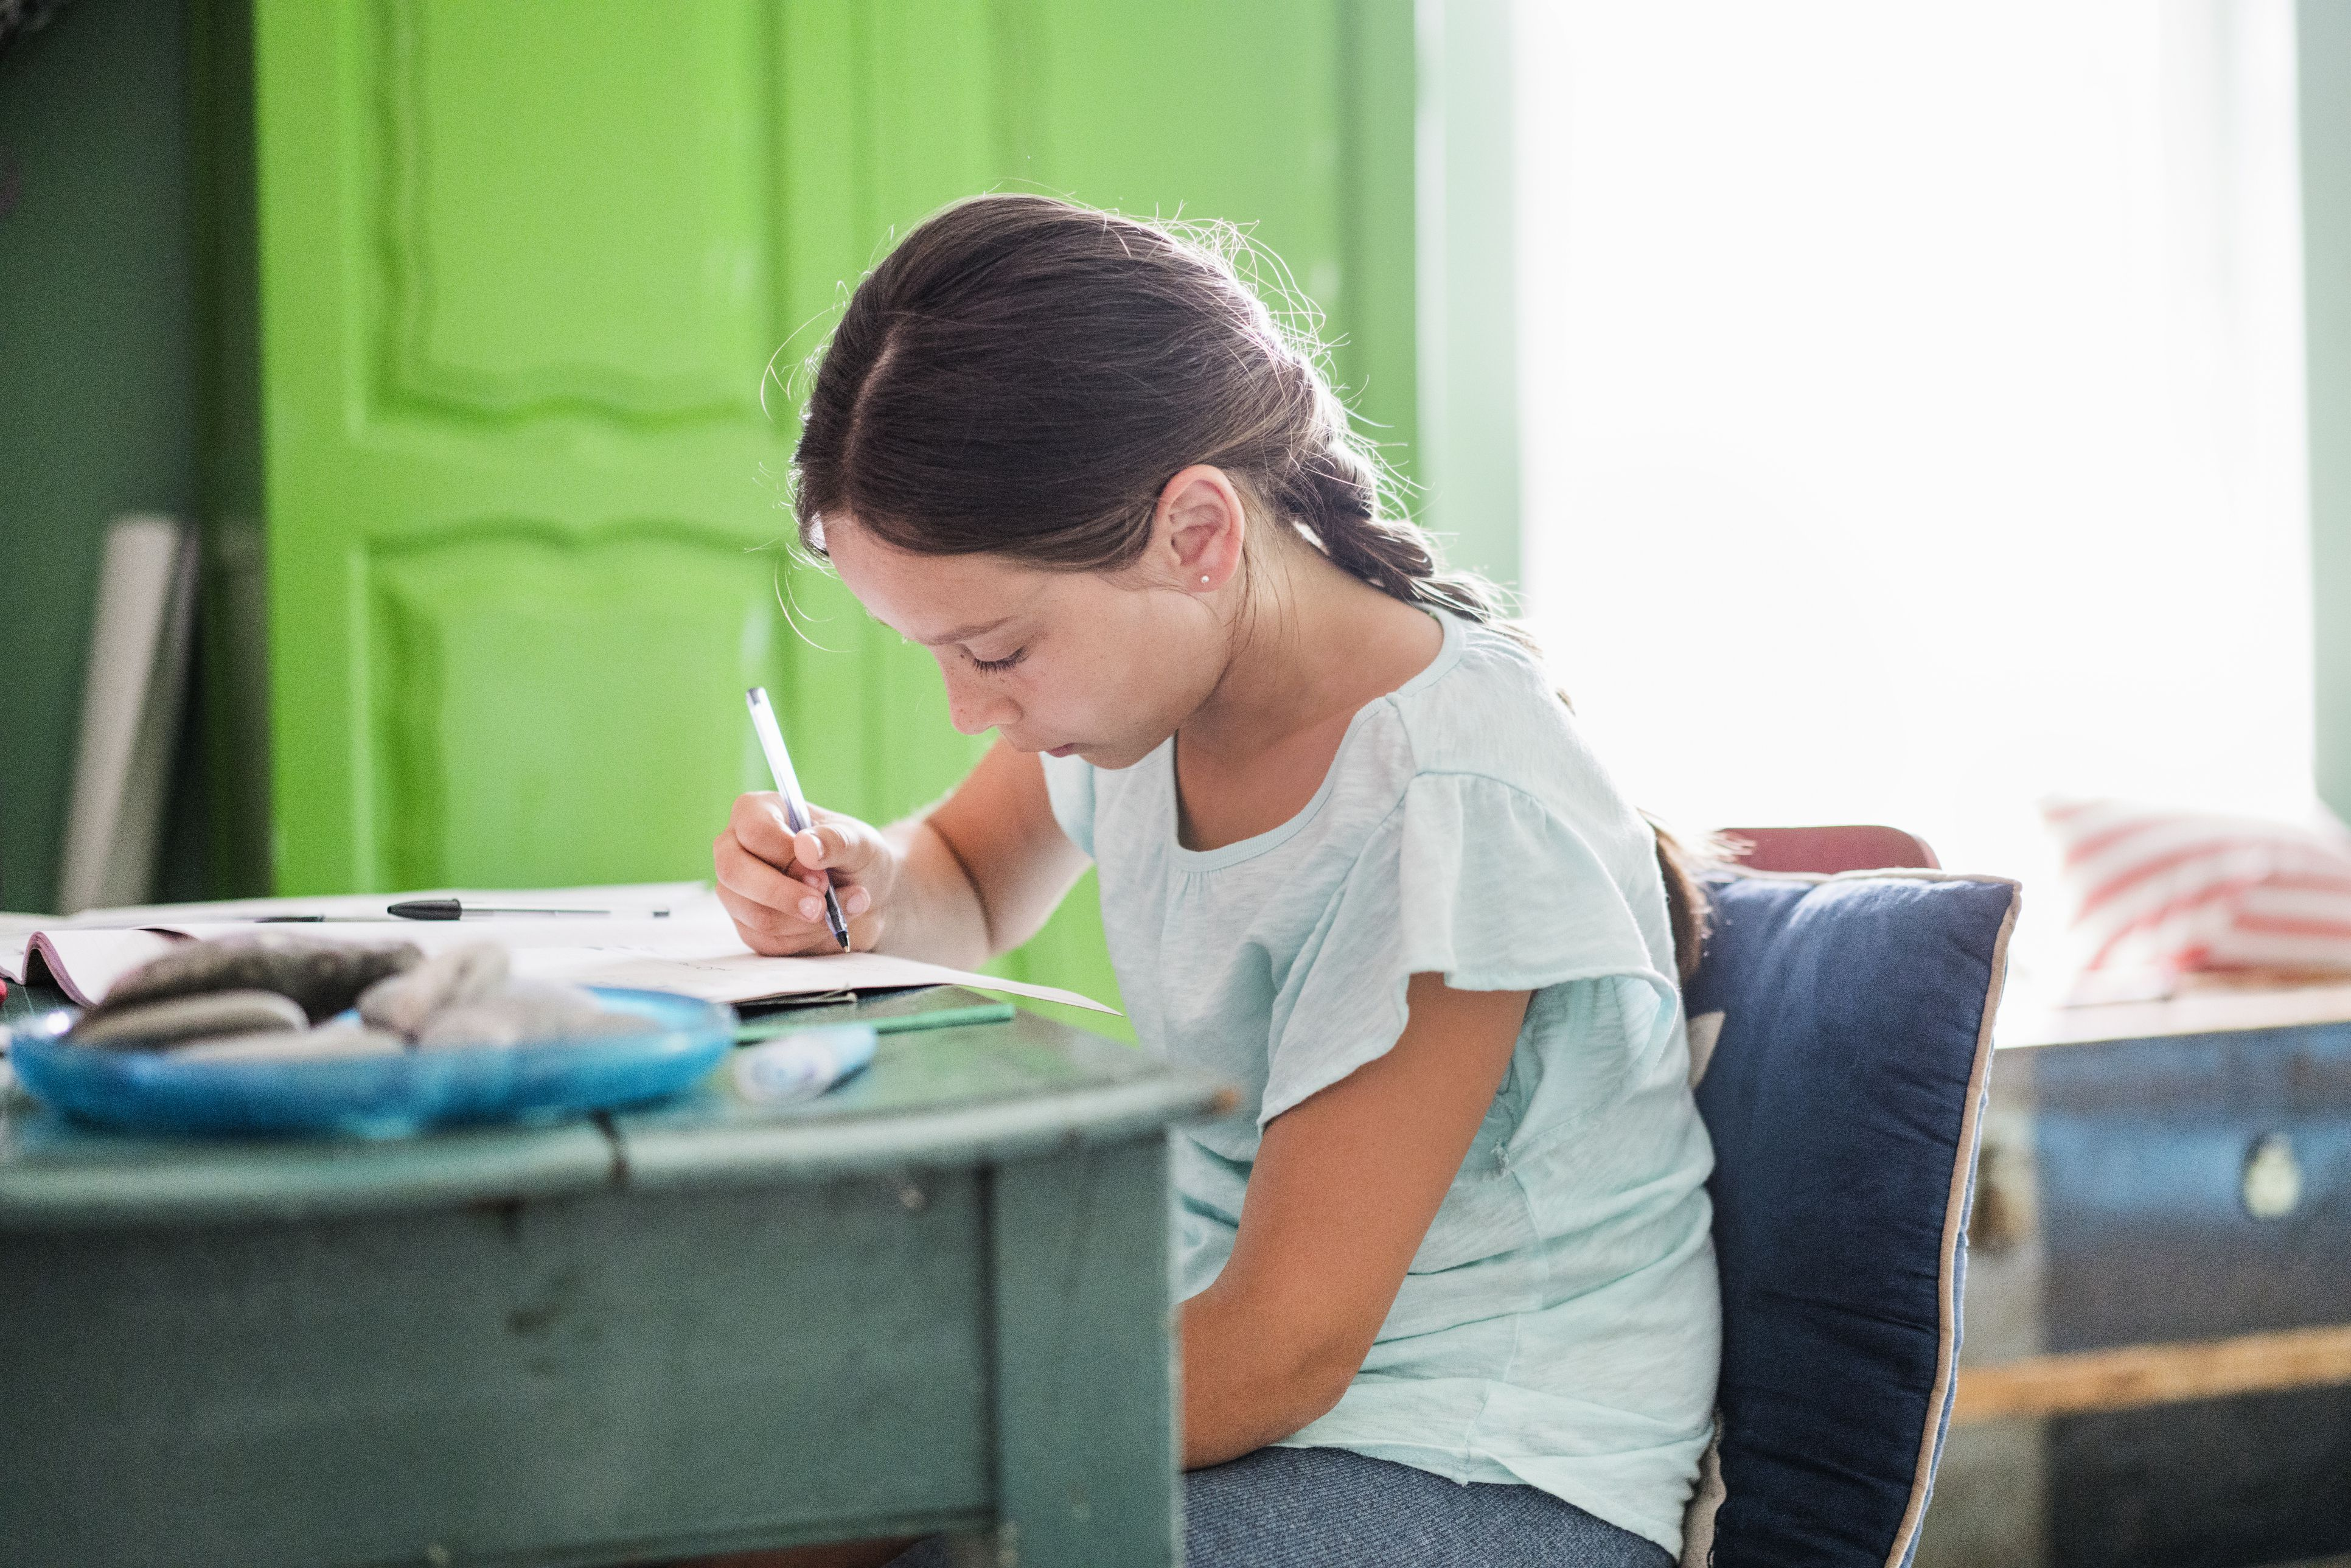 Concentrated girl doing homework at table